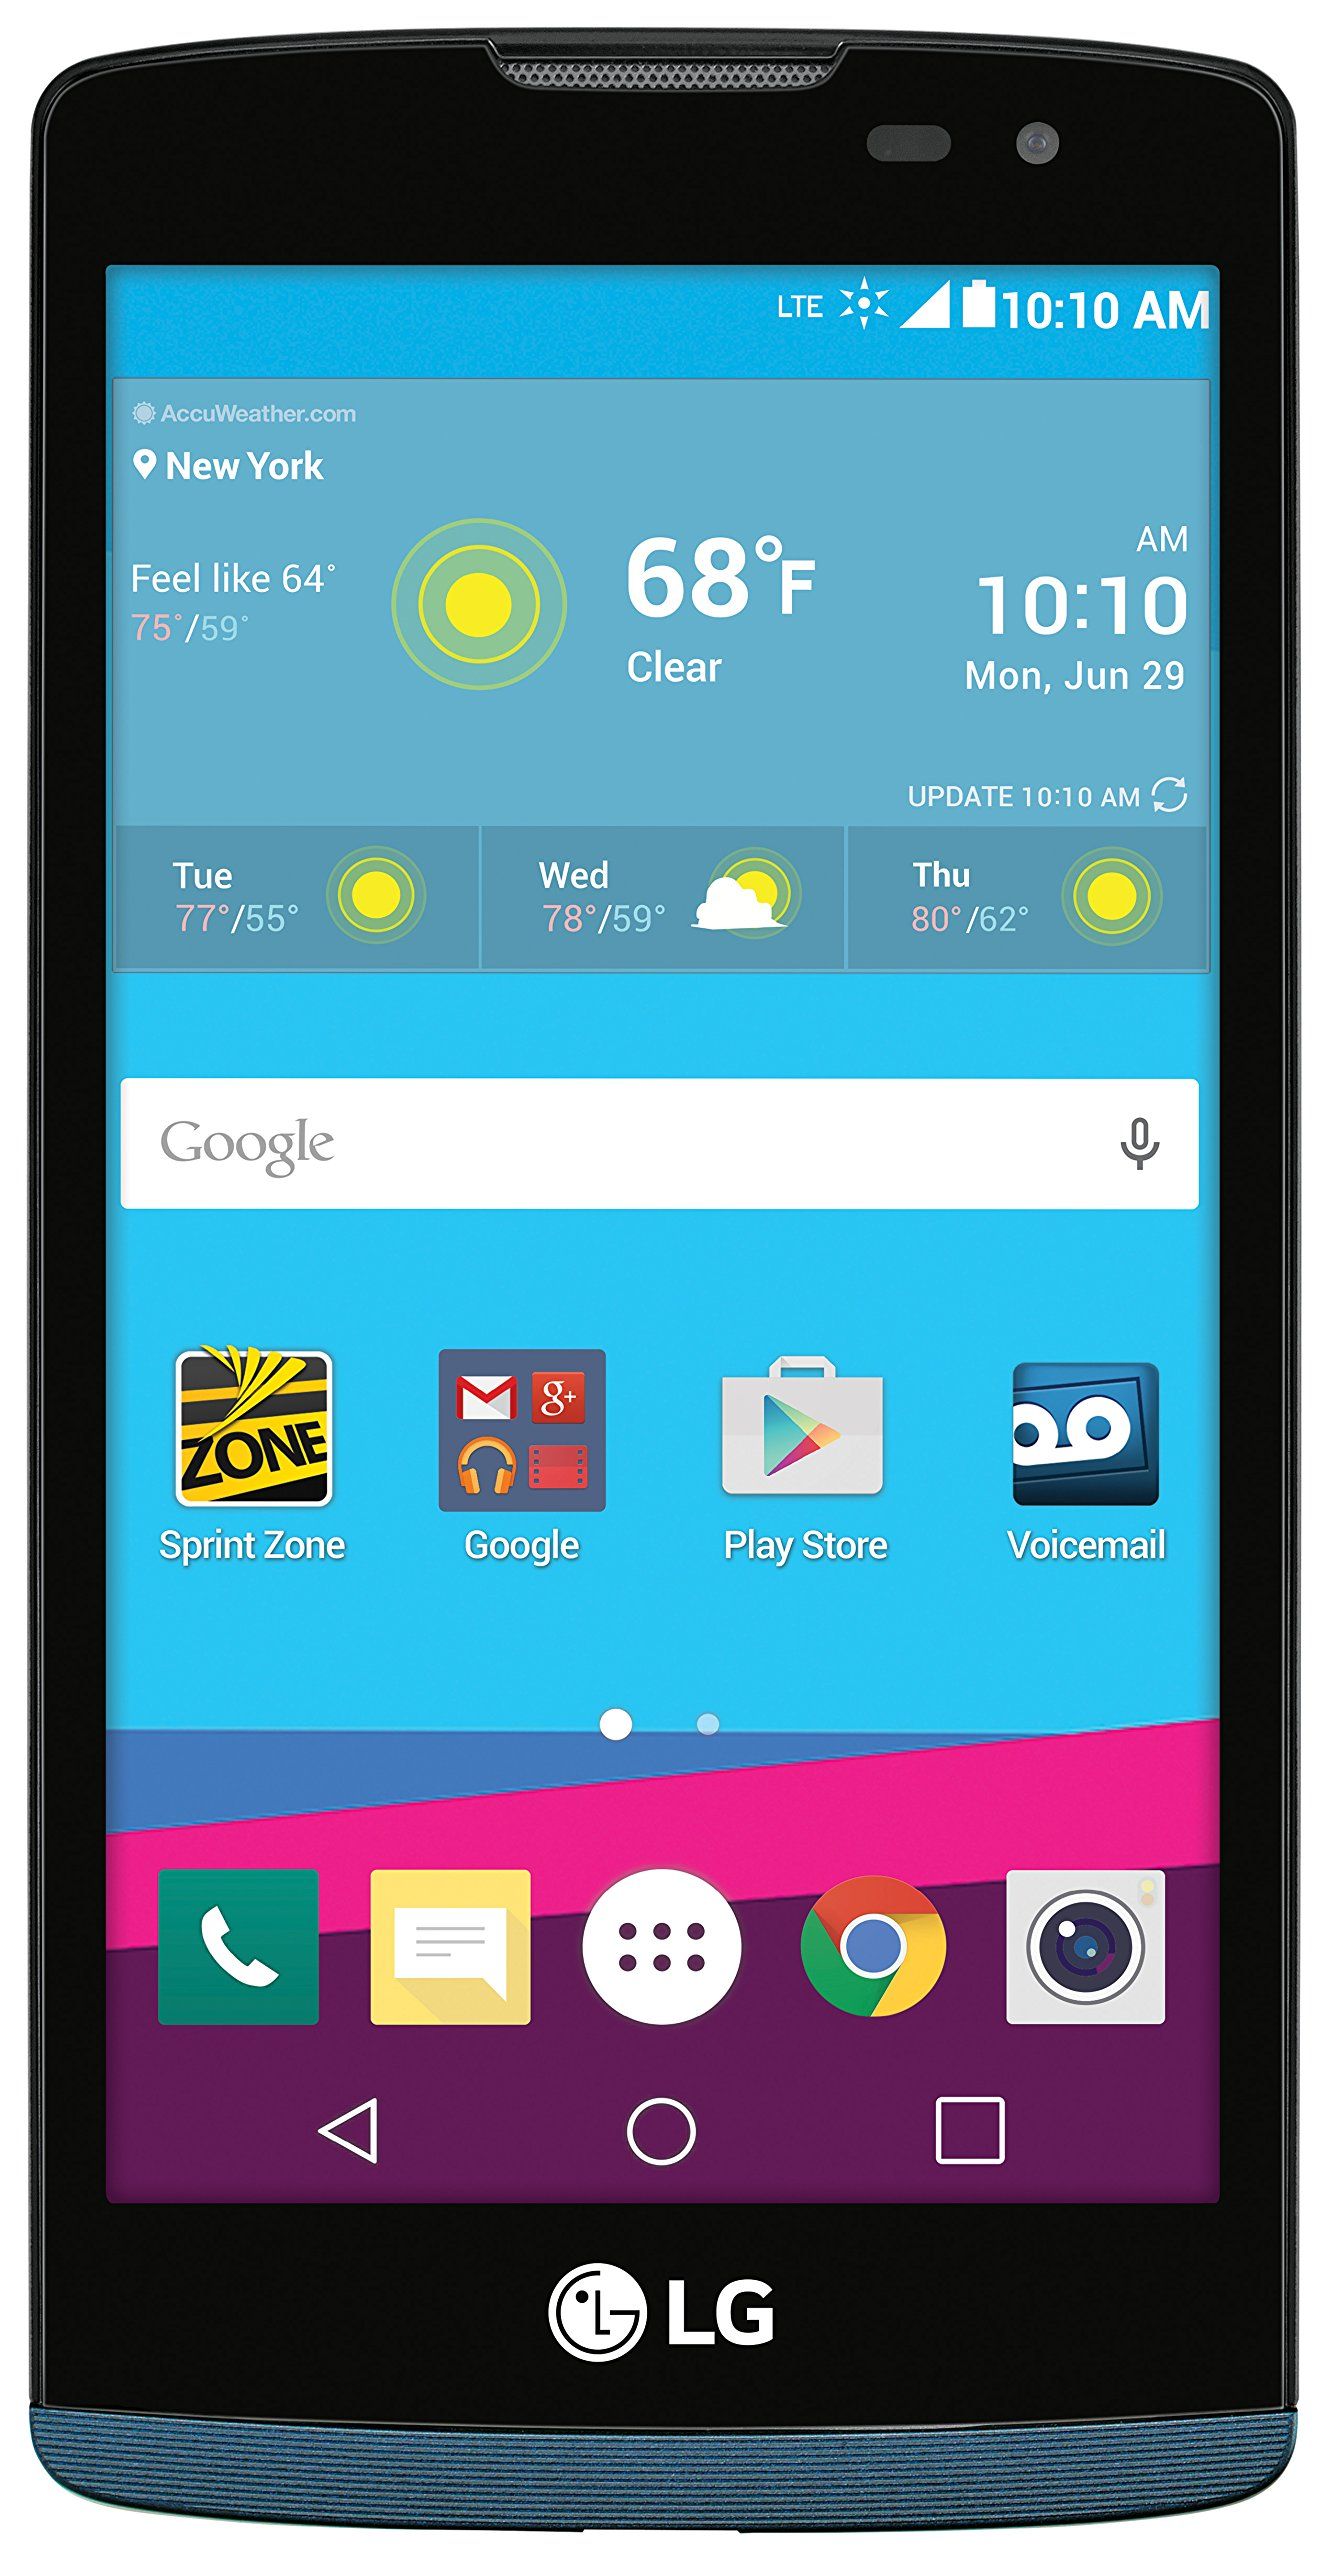 LG LGLS665ASB Tribute Duo with Android 5.1 and Qualcomm Snapdragon 410 Processor, No Contract, Sprint Prepaid Phone